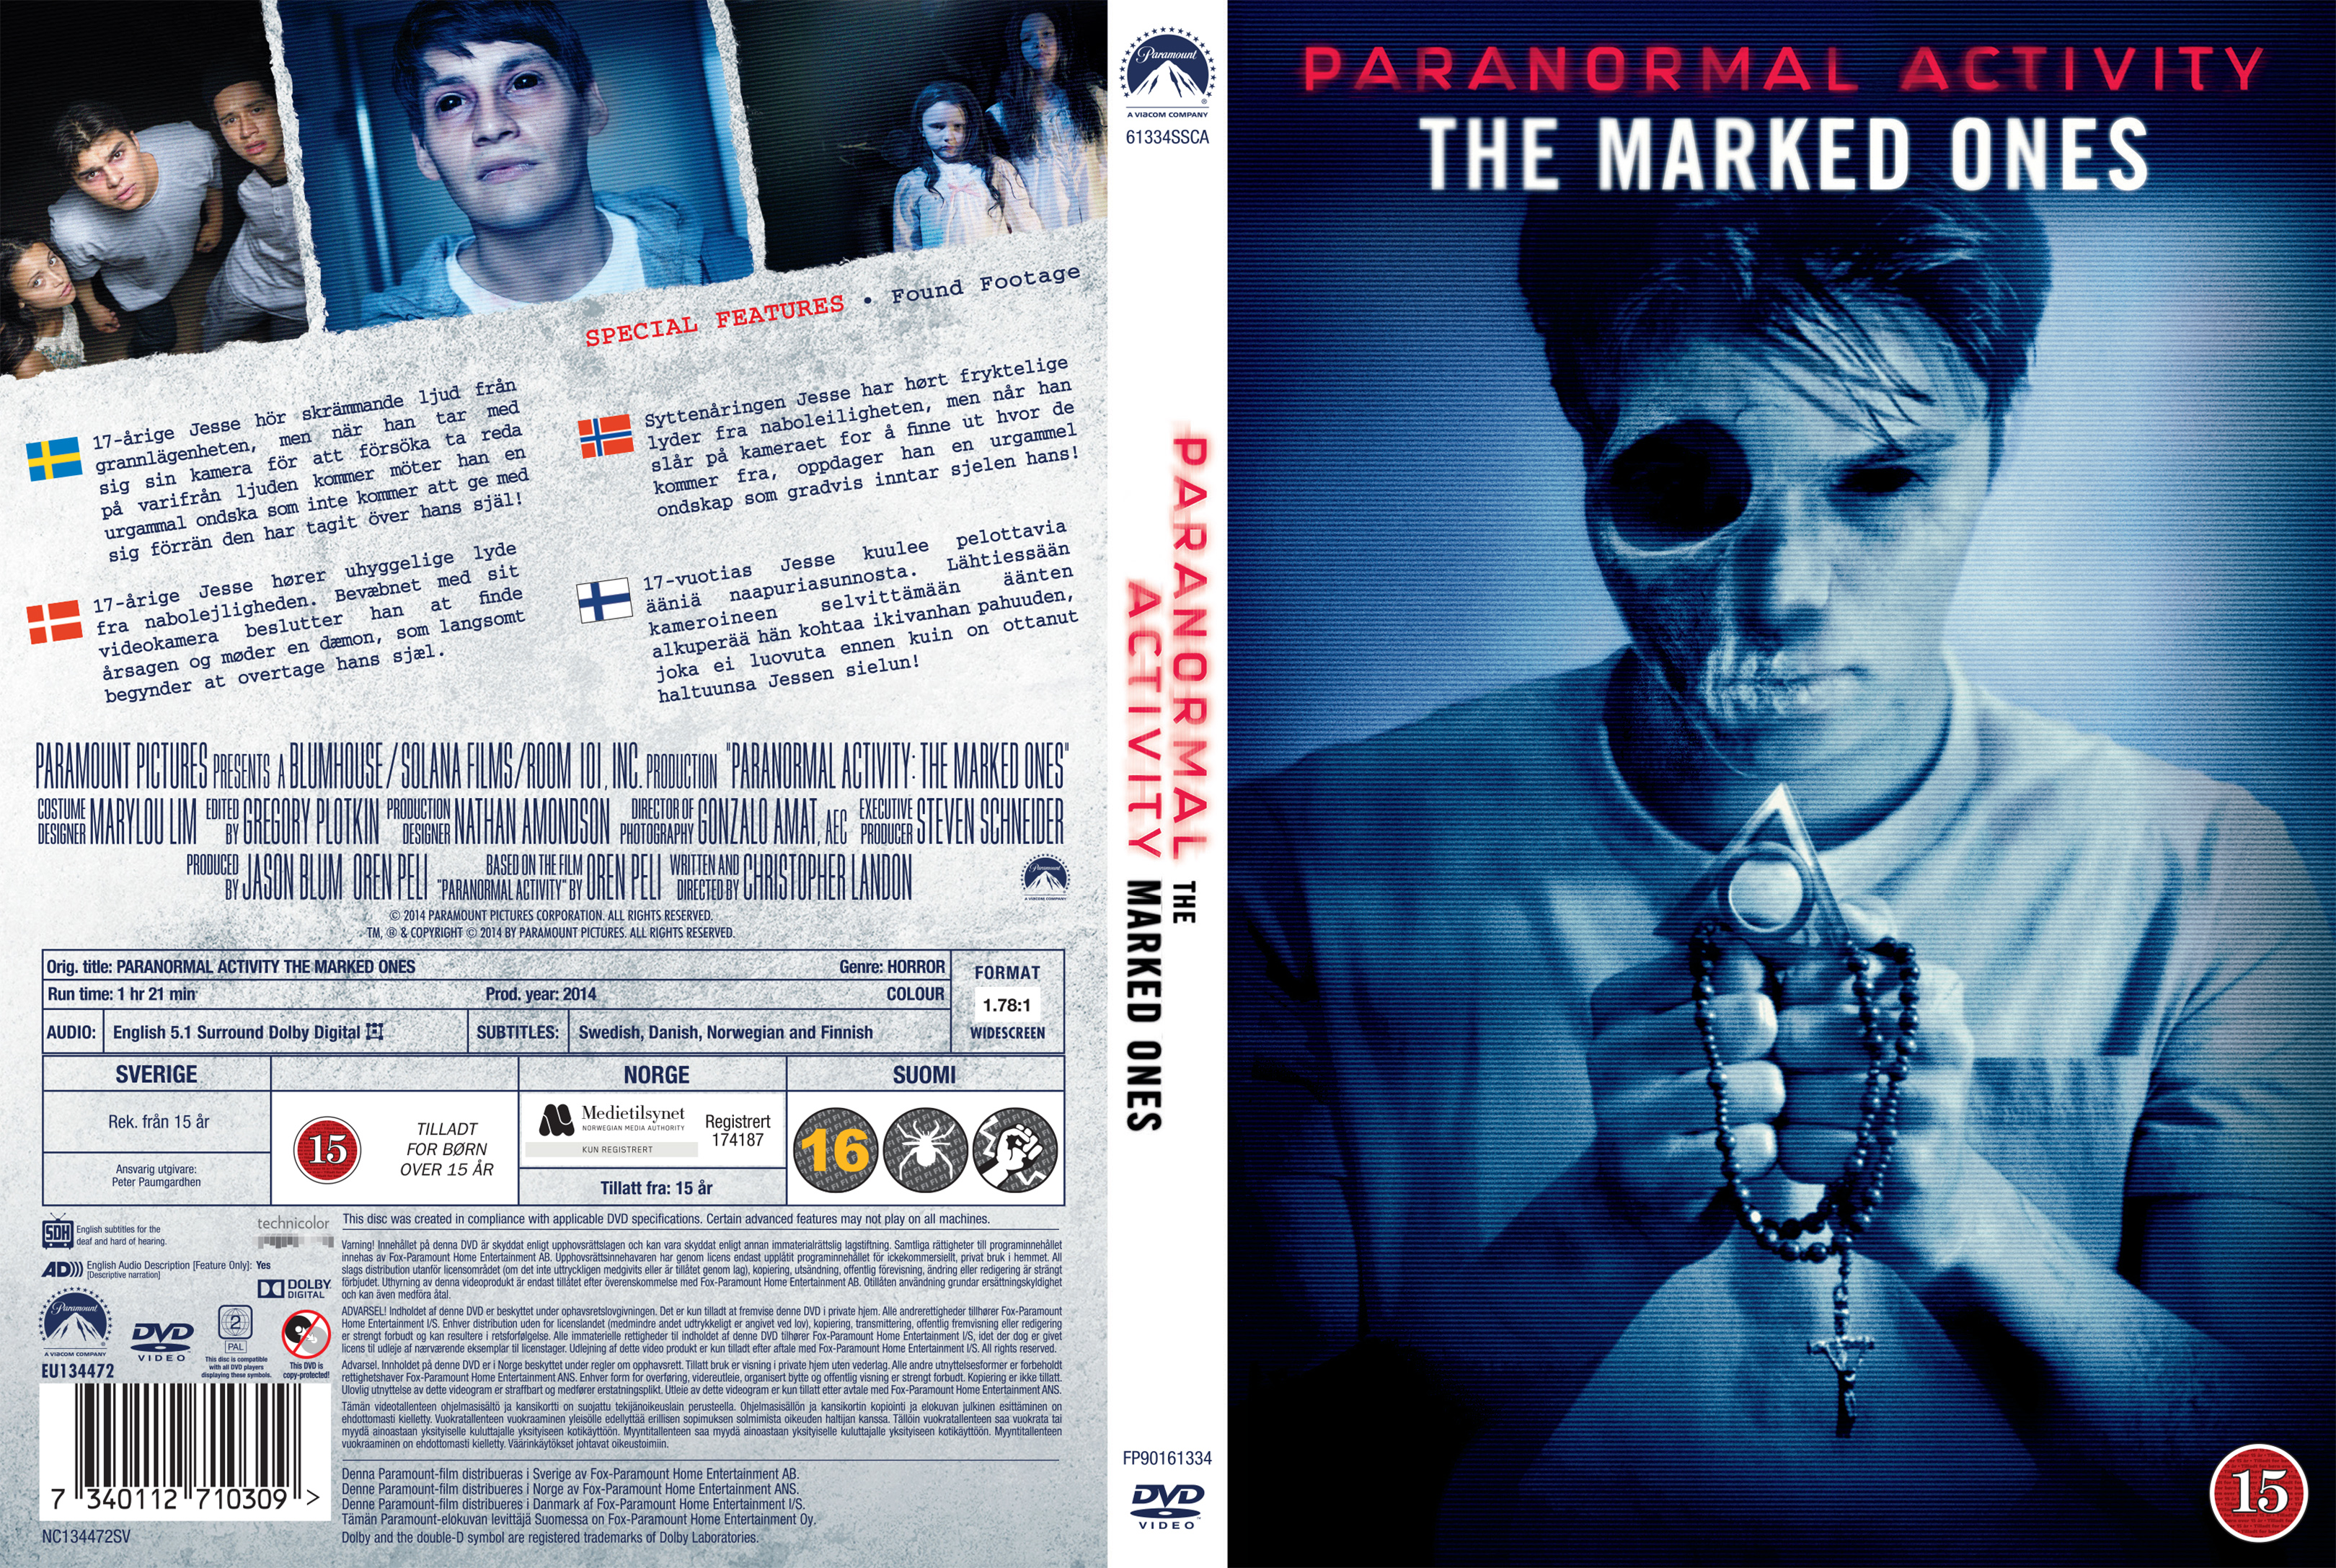 paranormal activity marked ones dvd cover - photo #8